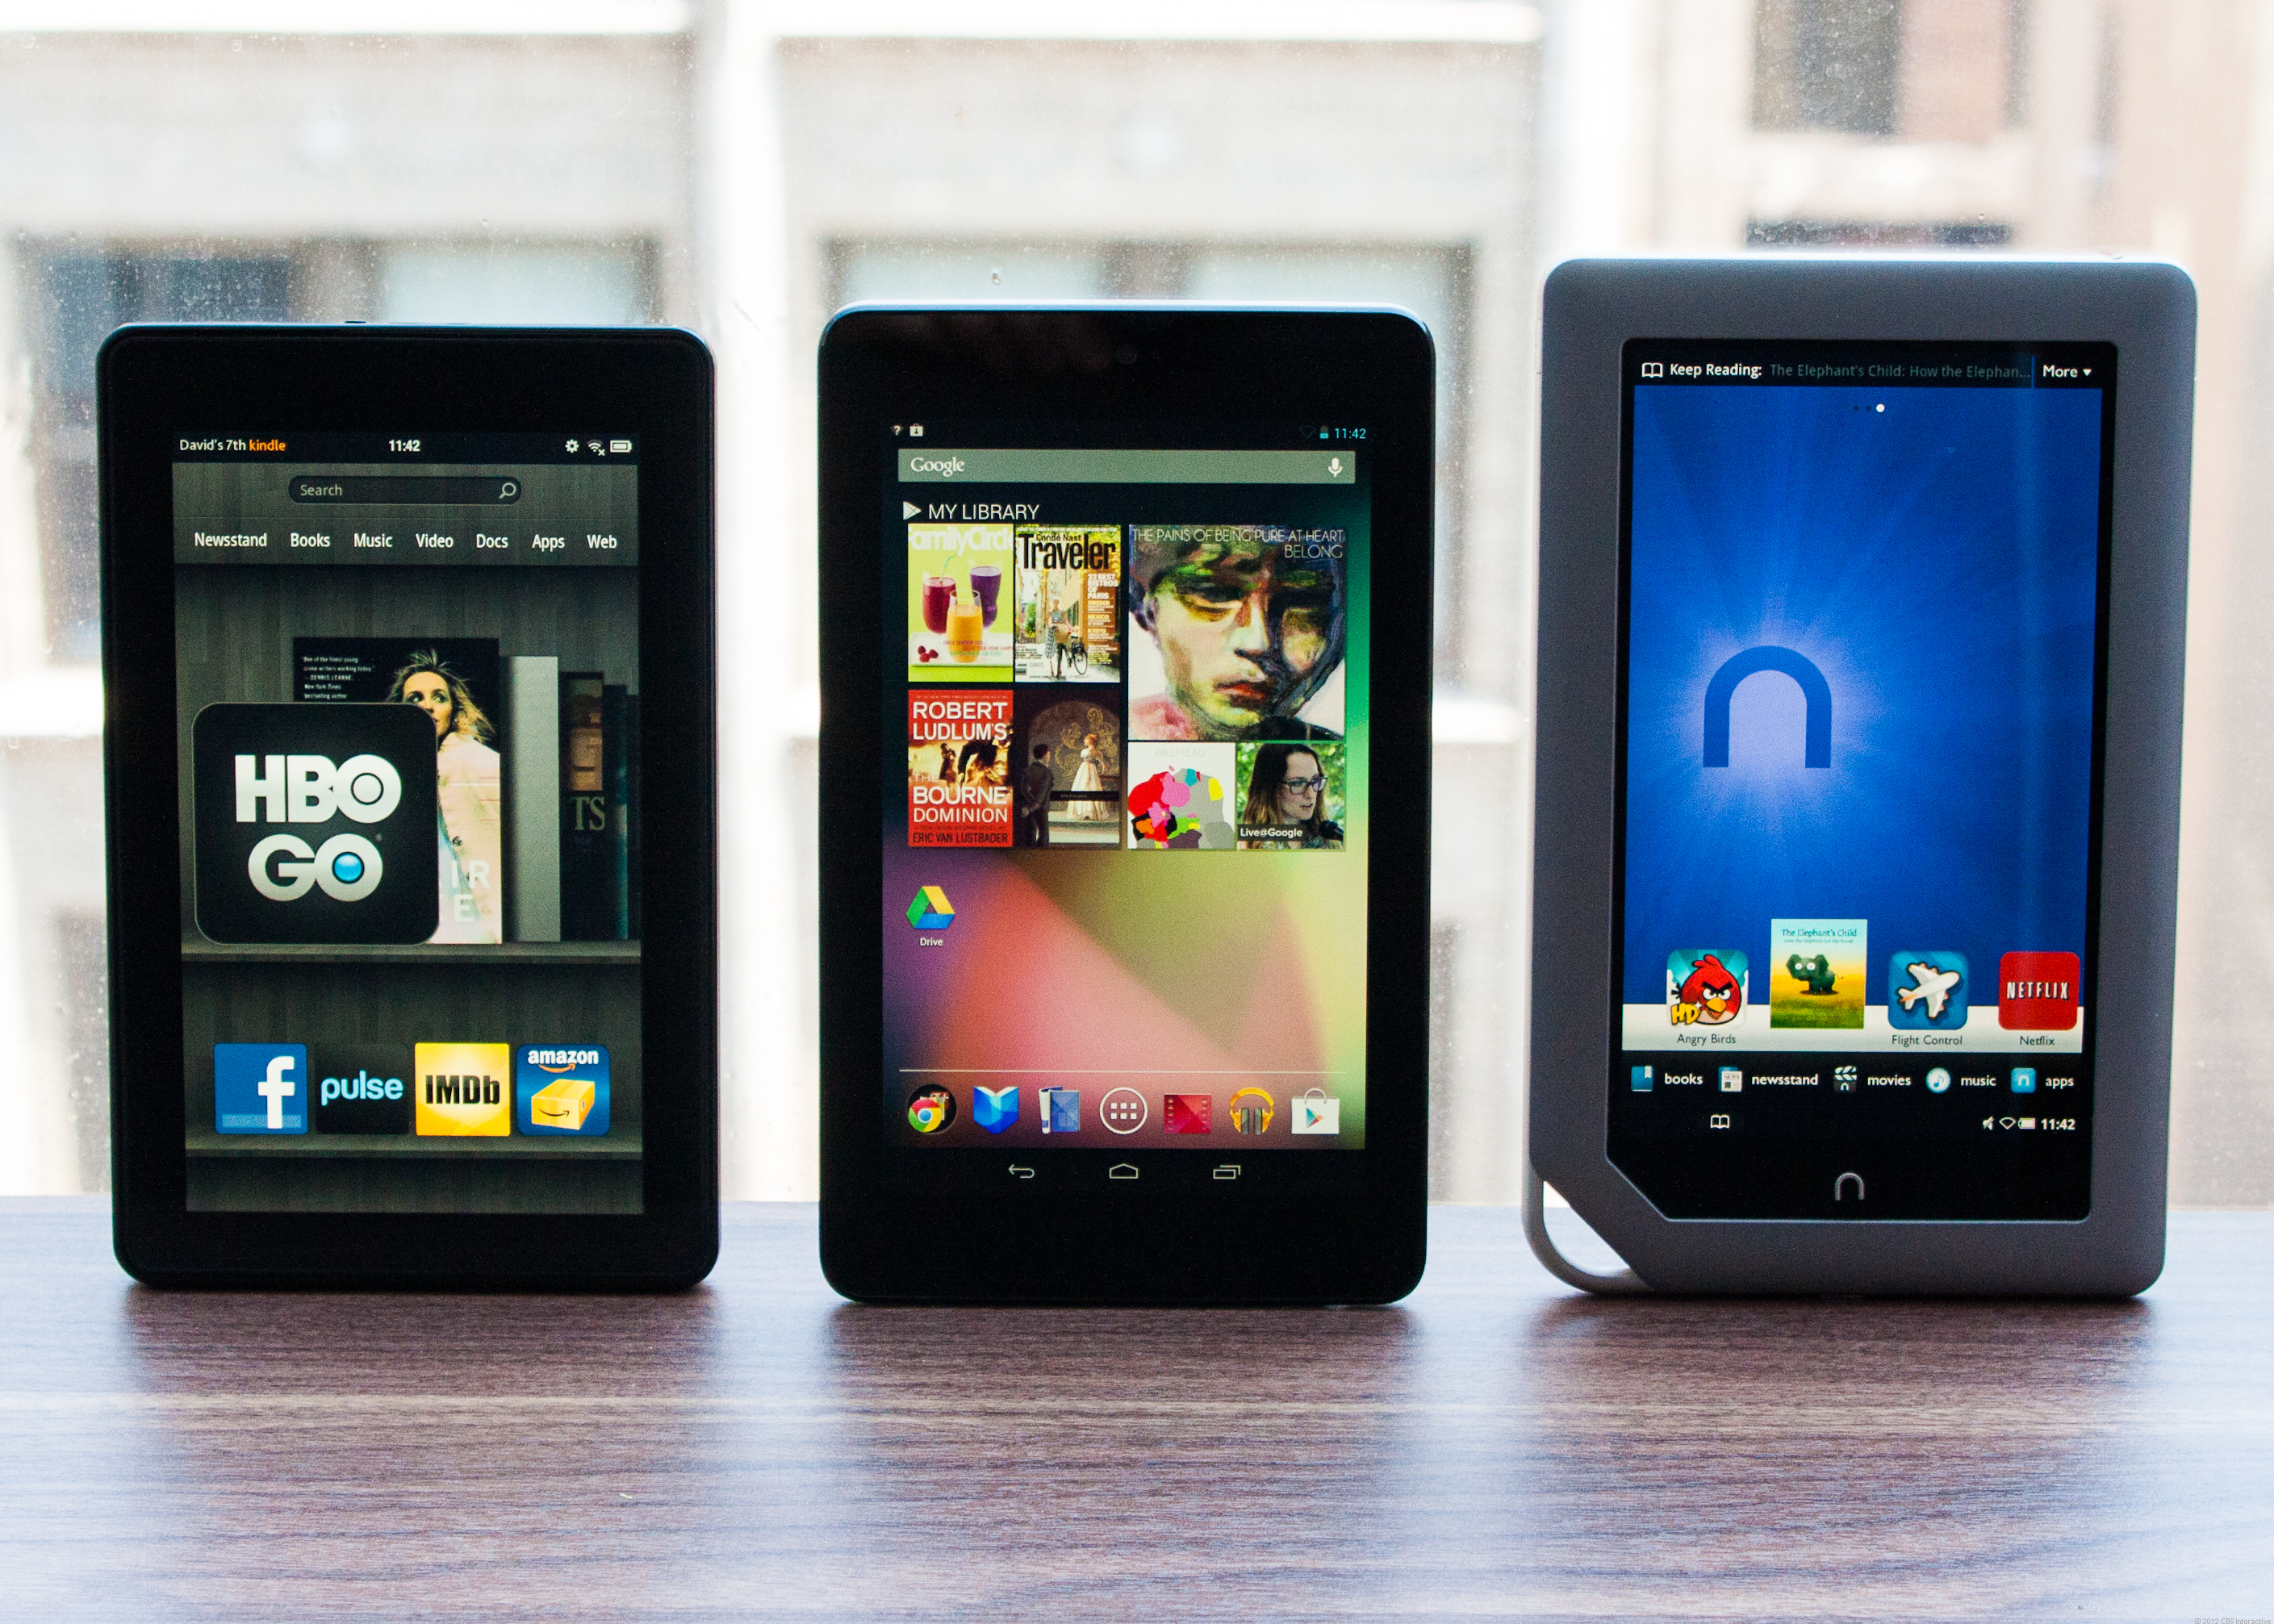 The Nexus 7 flanked by its chief competitors, the Amazon Kindle Fire and Barnes & Noble Nook Tablet.